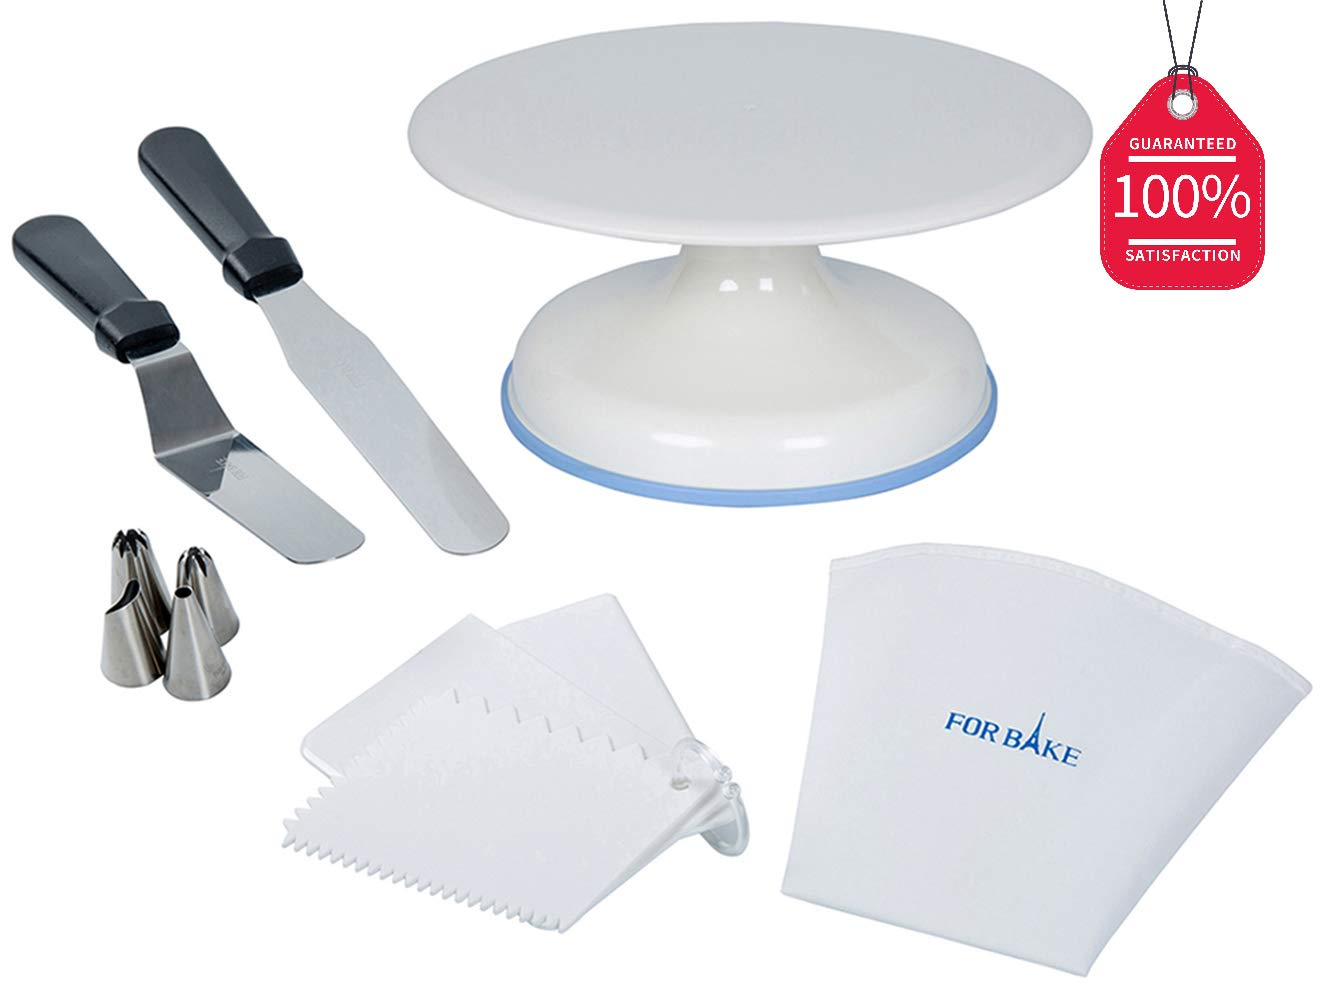 FOR BAKE Cake Decorating Supplies,(Upgrade) Bearing Axis Rotating Cake turntable-White Cake Decoration Stand with 2 Icing Spatulas and Reusable Piping Tips Set by FOR BAKE